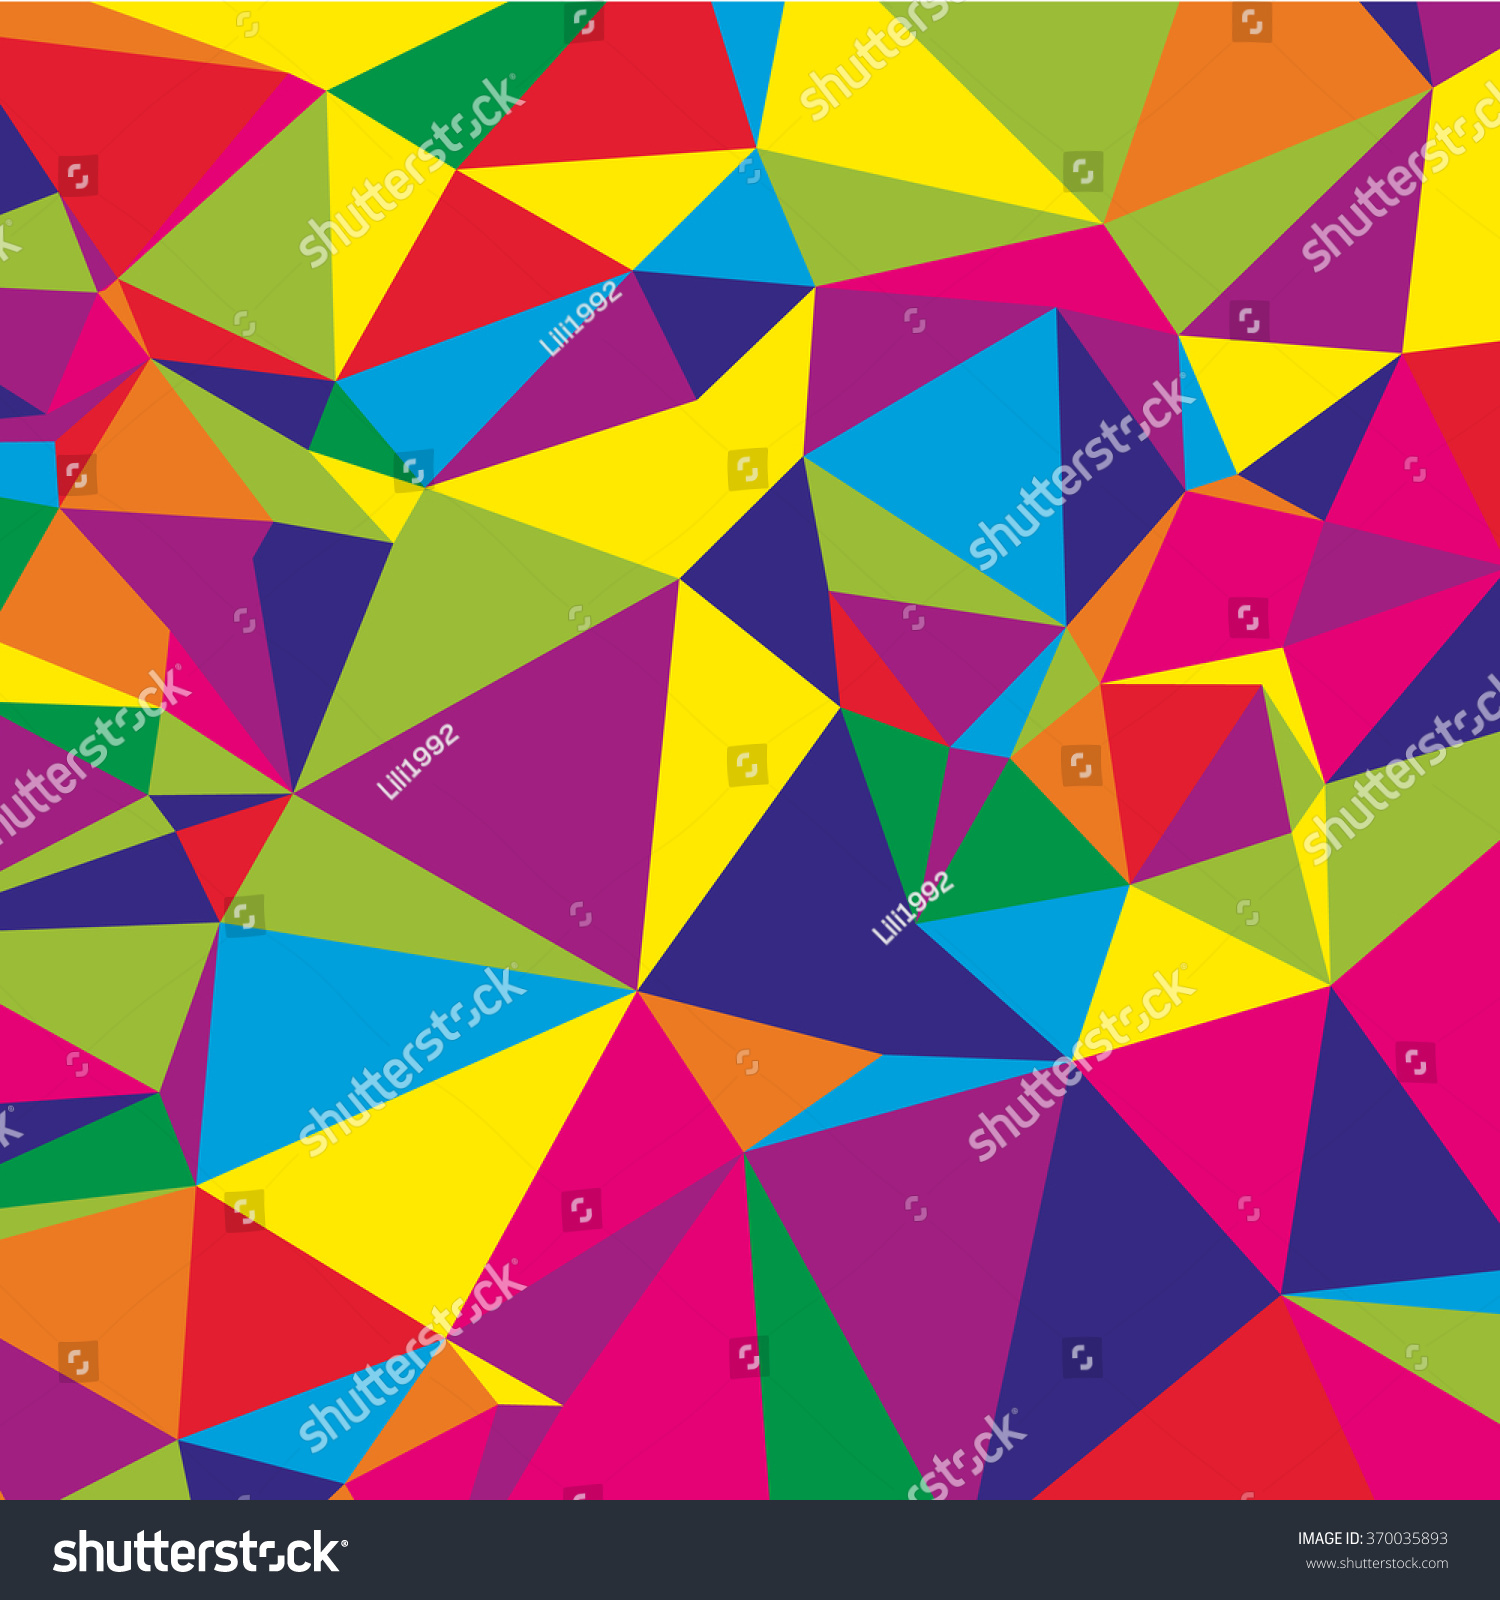 Warna Modern Abstract Geometric Background Modern Overlapping Triangles Stock